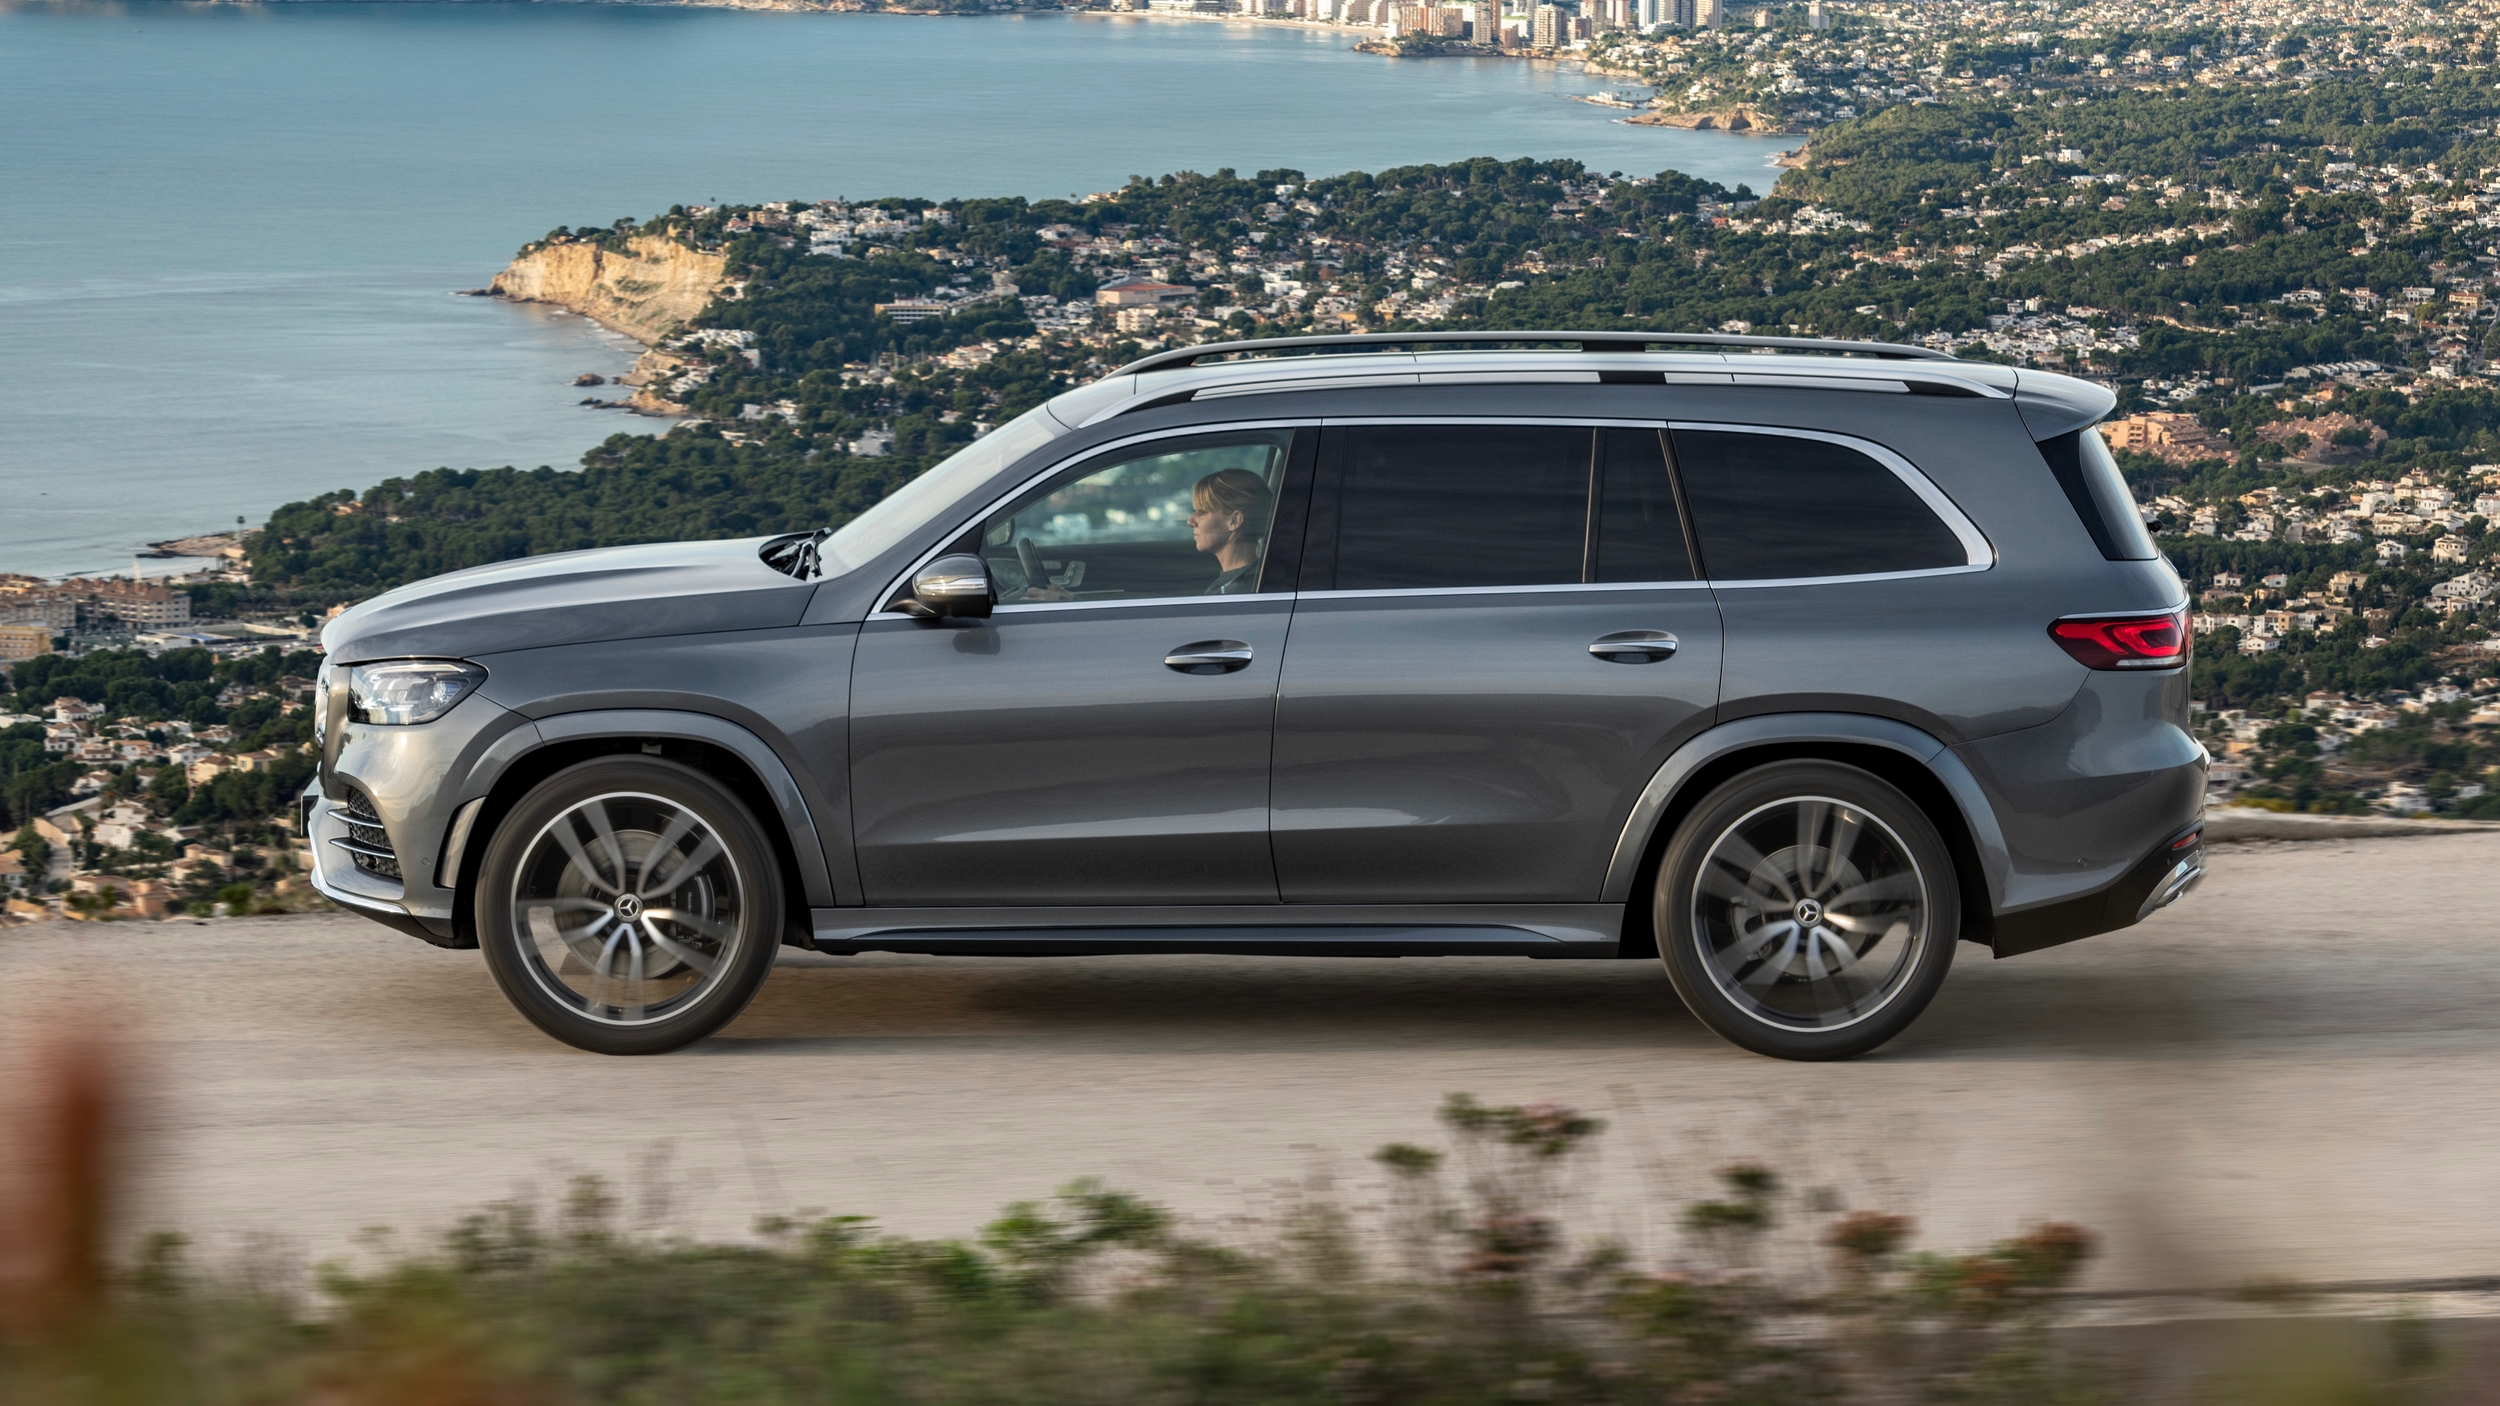 2020 Mercedes-Benz GLS 450 4MATIC starts at $76,195 | Autoblog